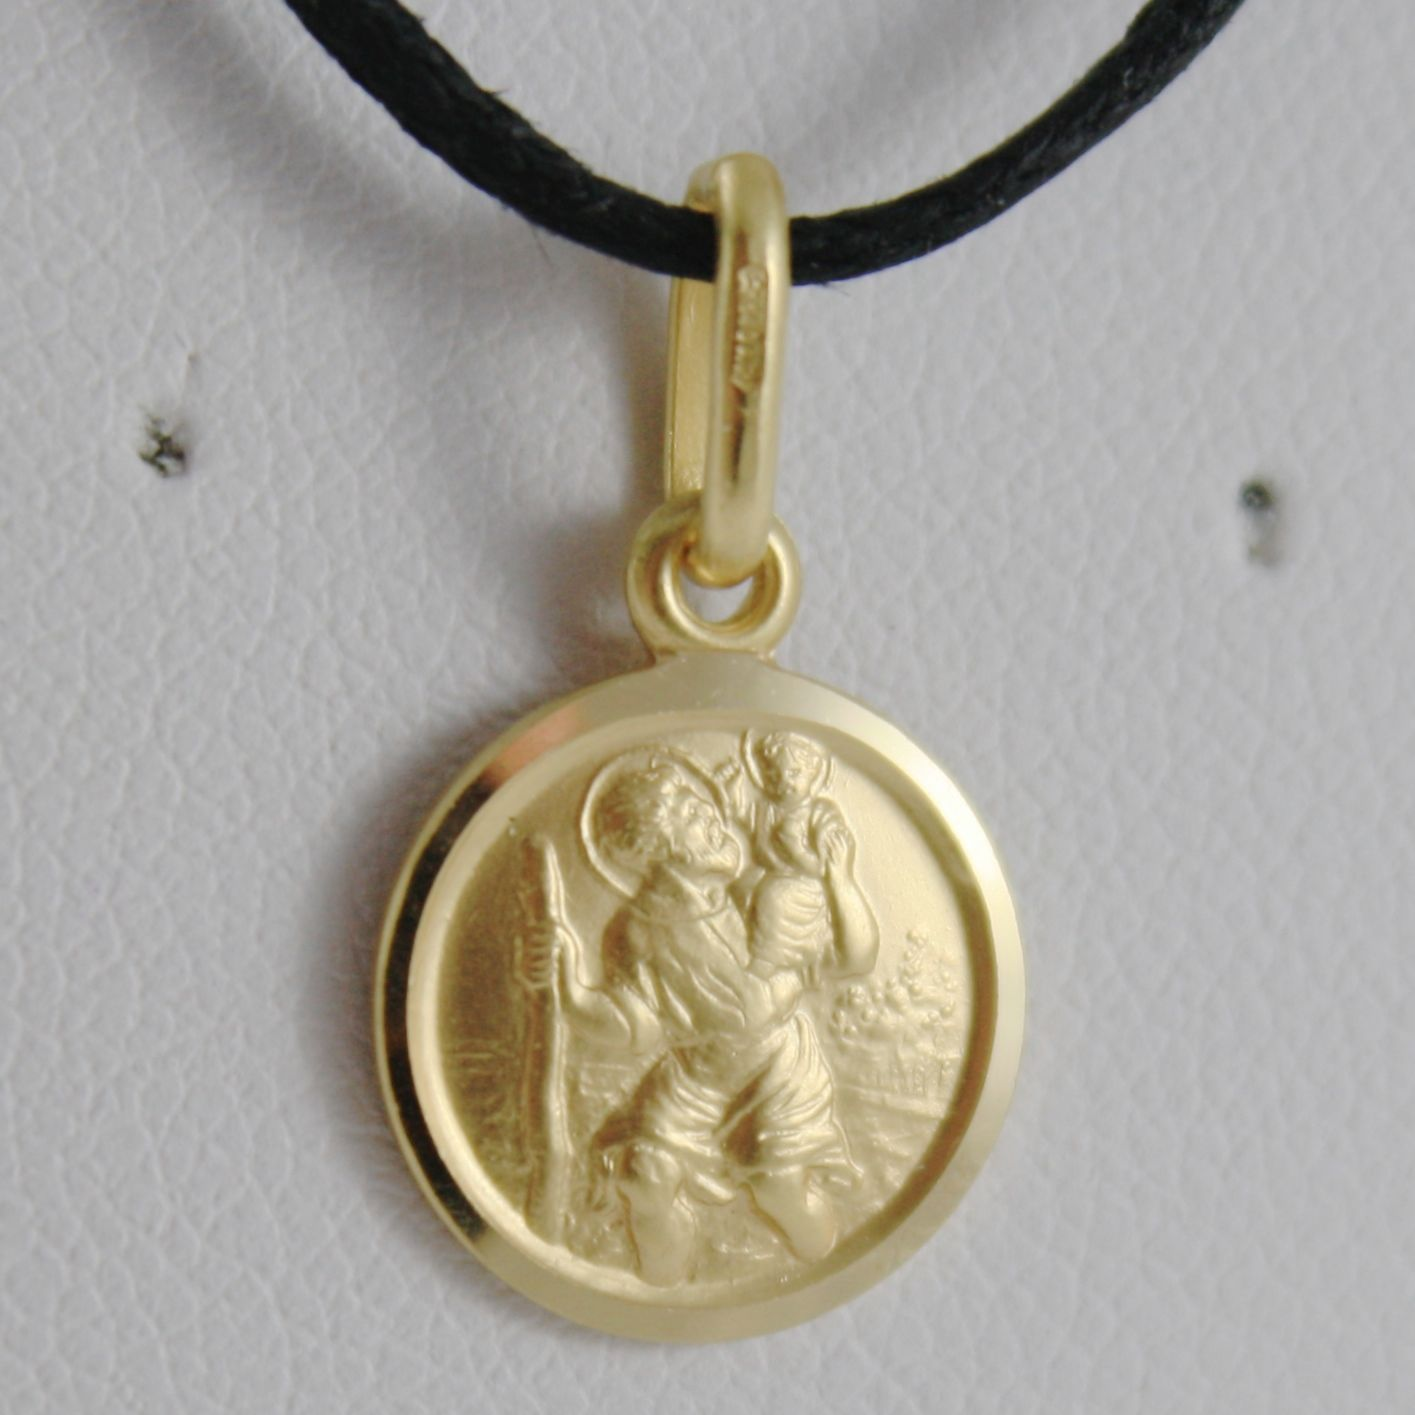 SOLID 18K YELLOW GOLD ST SAINT SANT CRISTOFORO CHRISTOPHER MEDAL, MADE IN ITALY